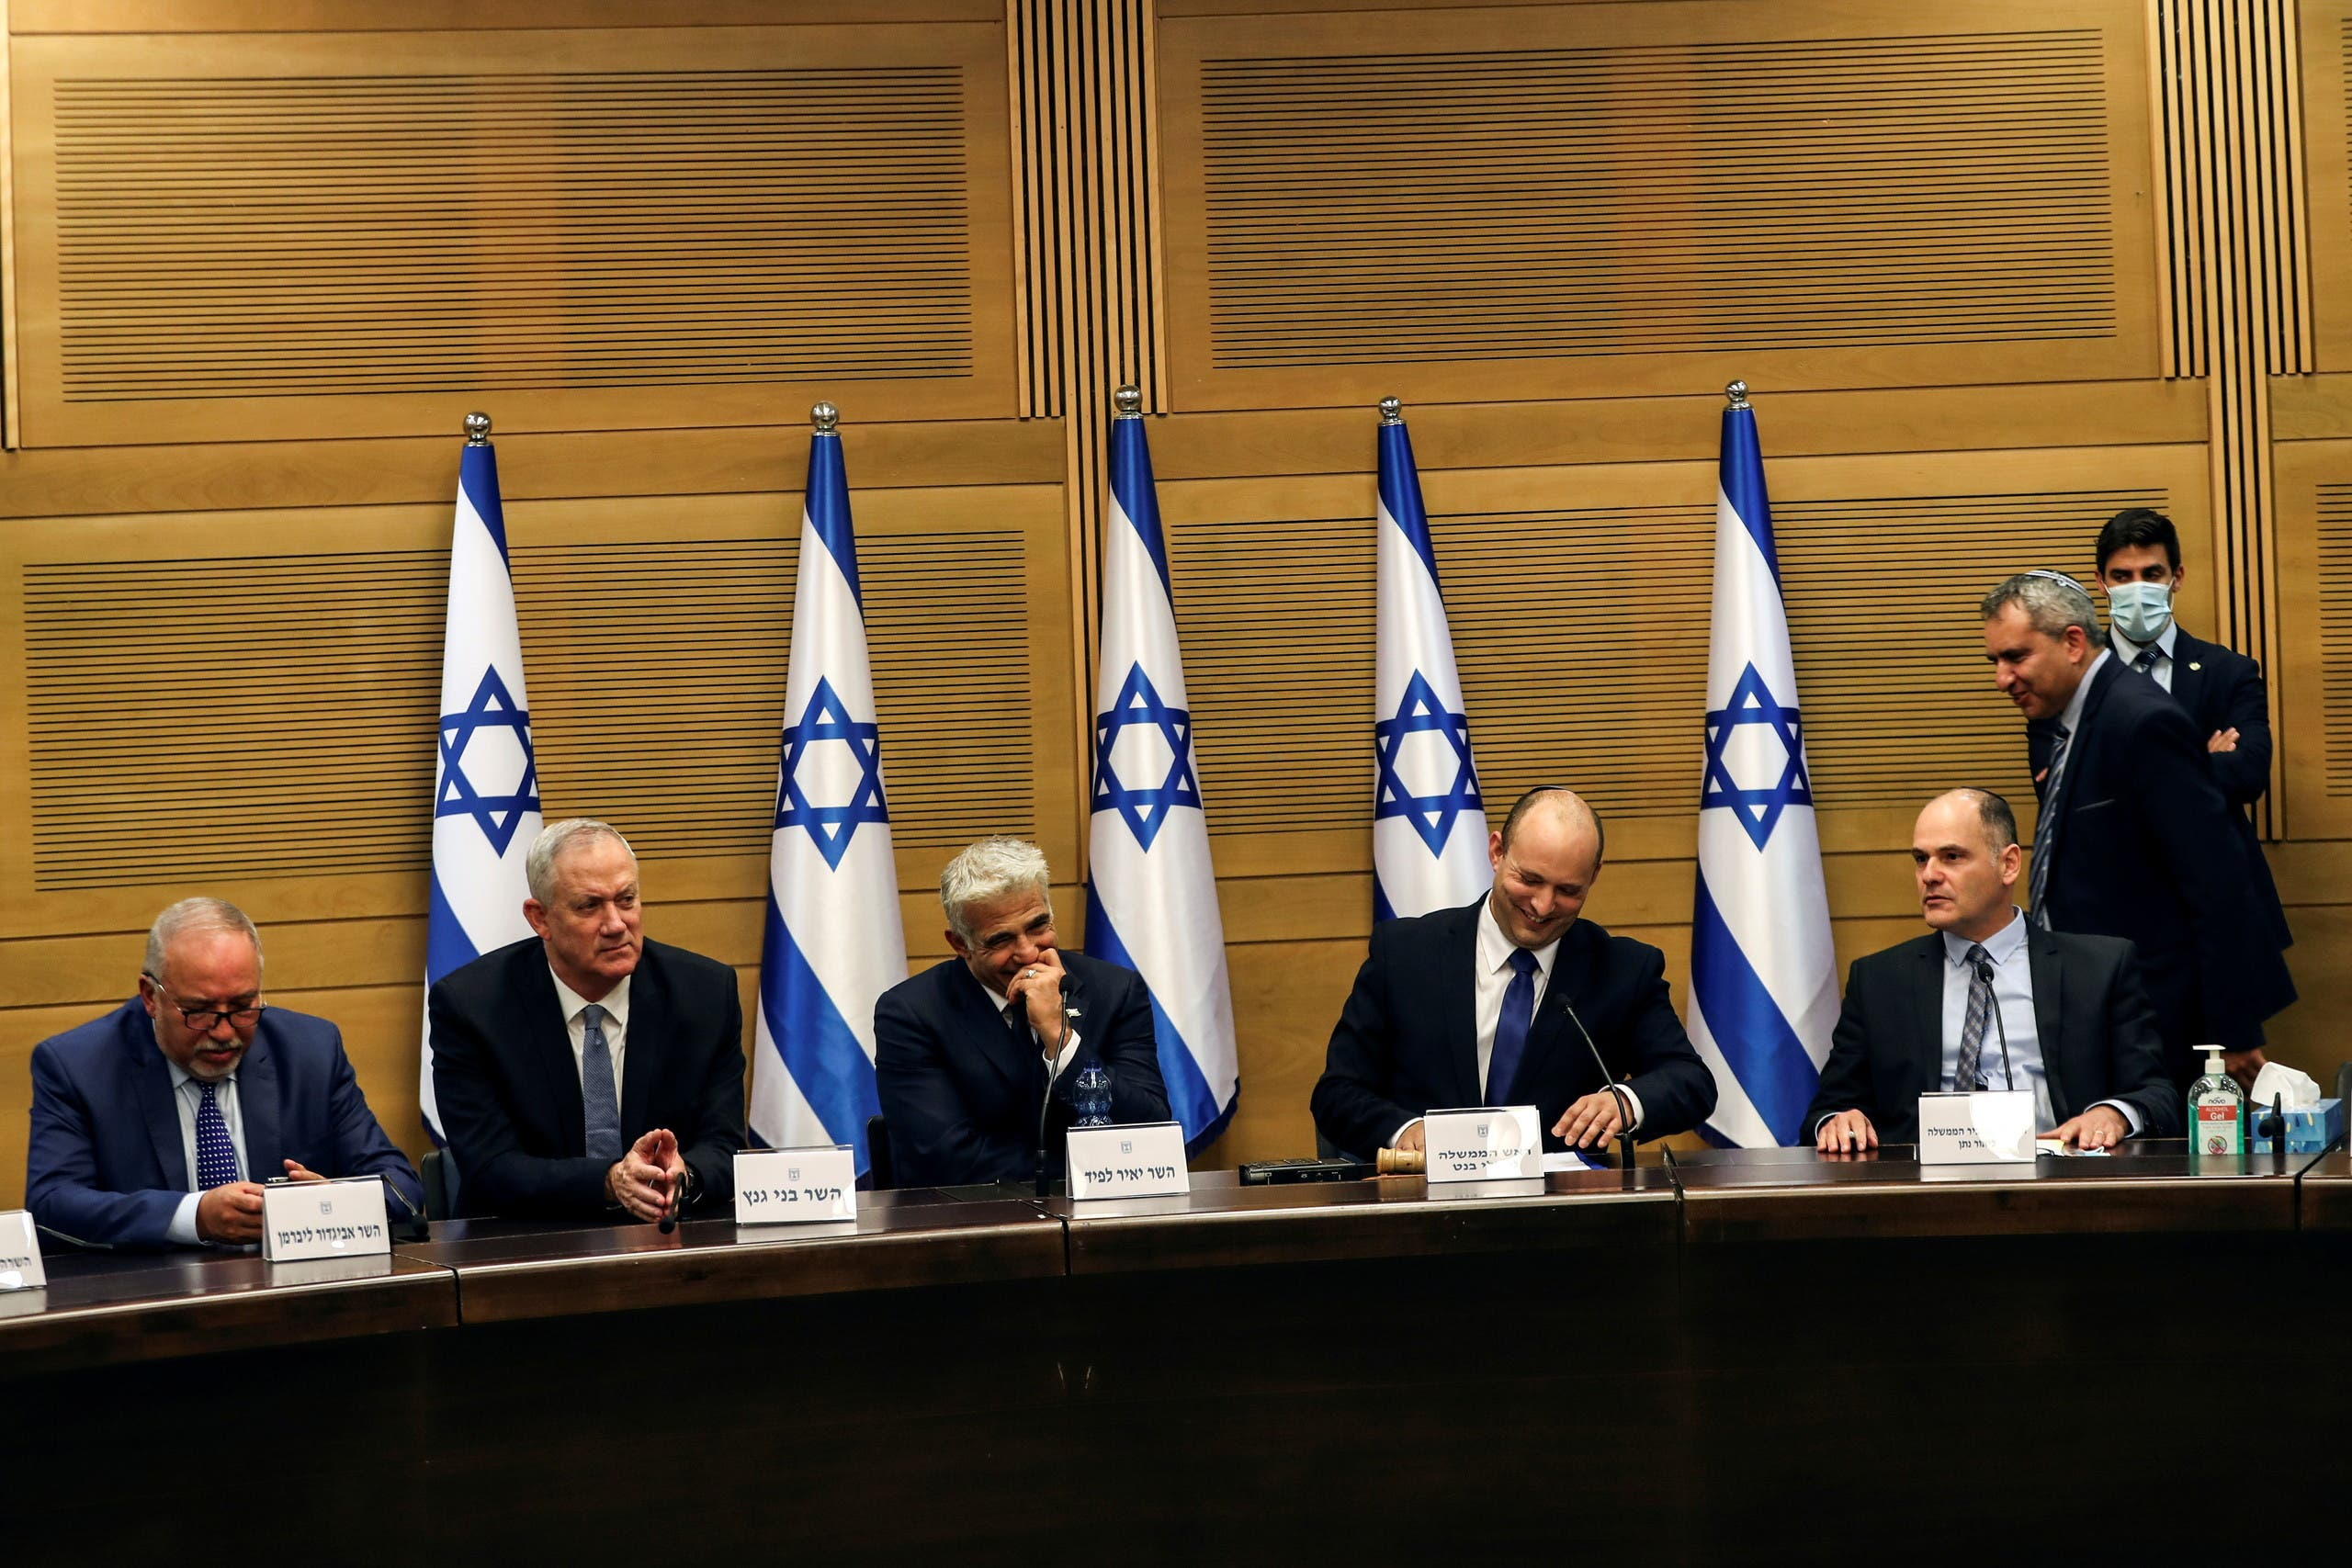 Israeli Prime Minister Naftali Bennett and some of his government attend its first cabinet meeting in the Knesset, Israel's parliament, in Jerusalem June 13, 2021. (Reuters)